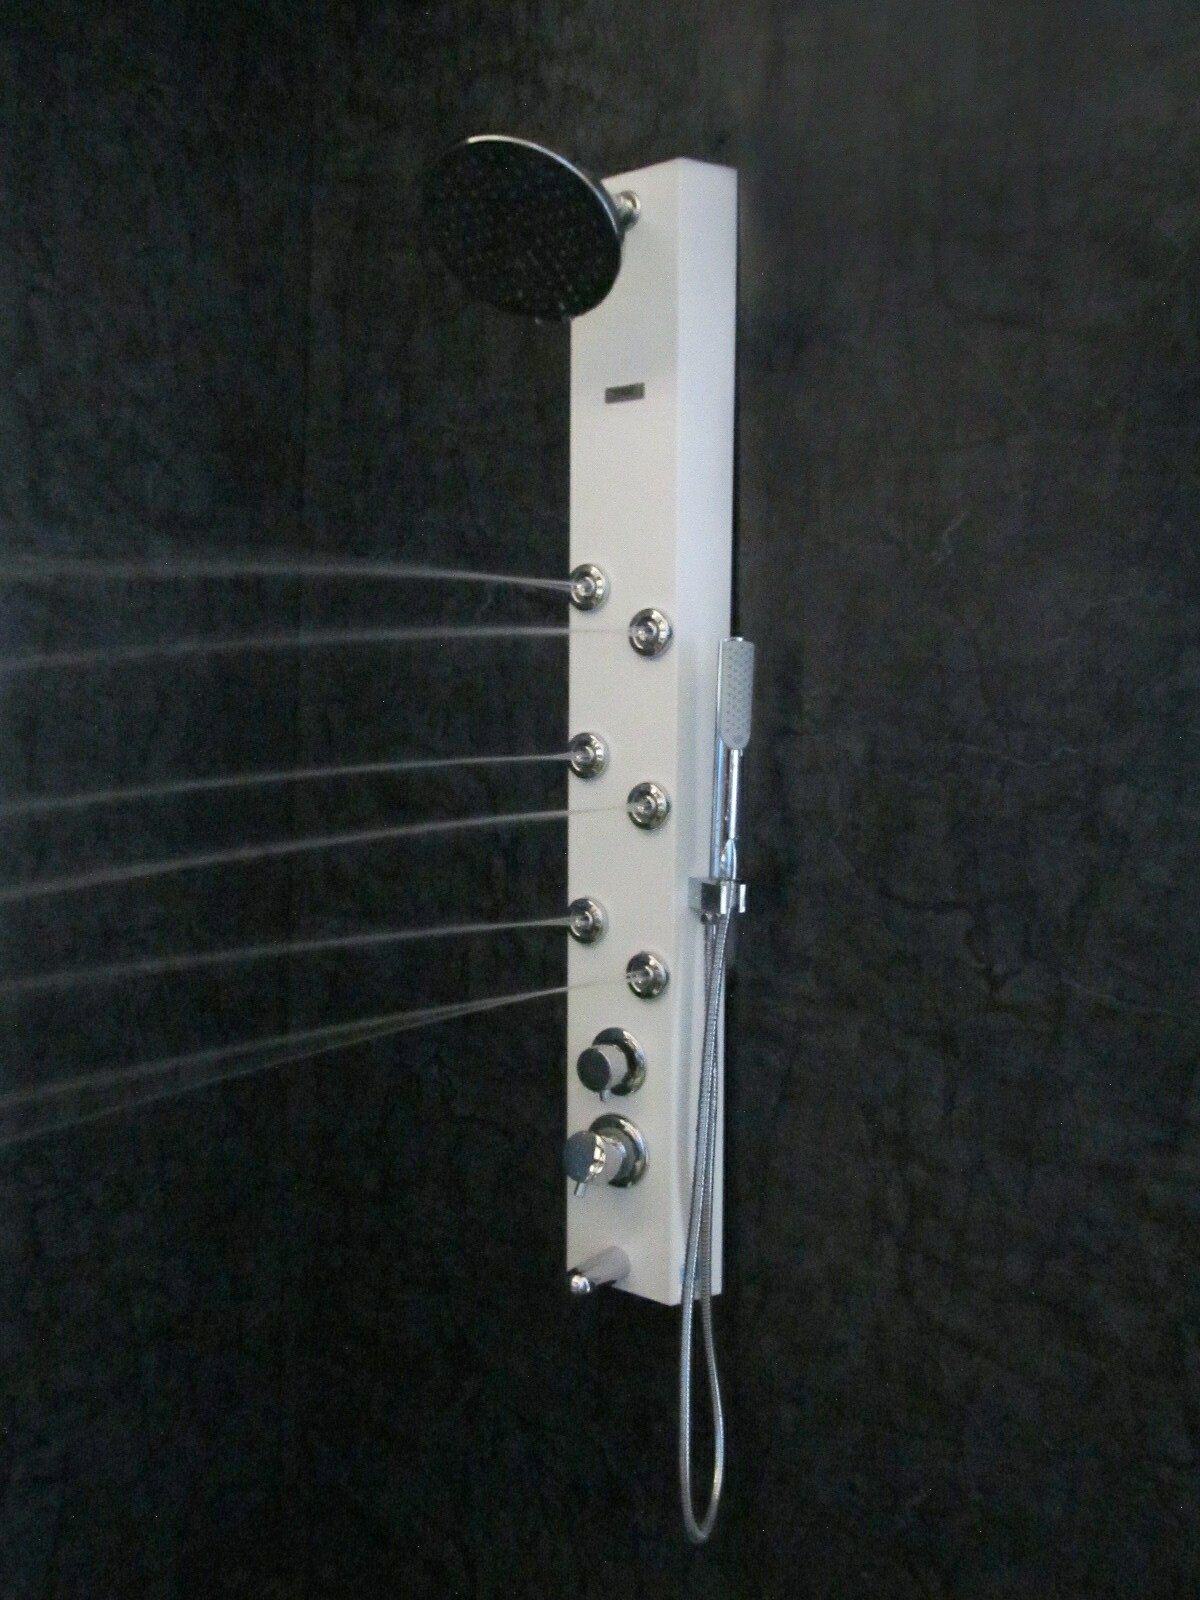 CLYDE Shower Panel